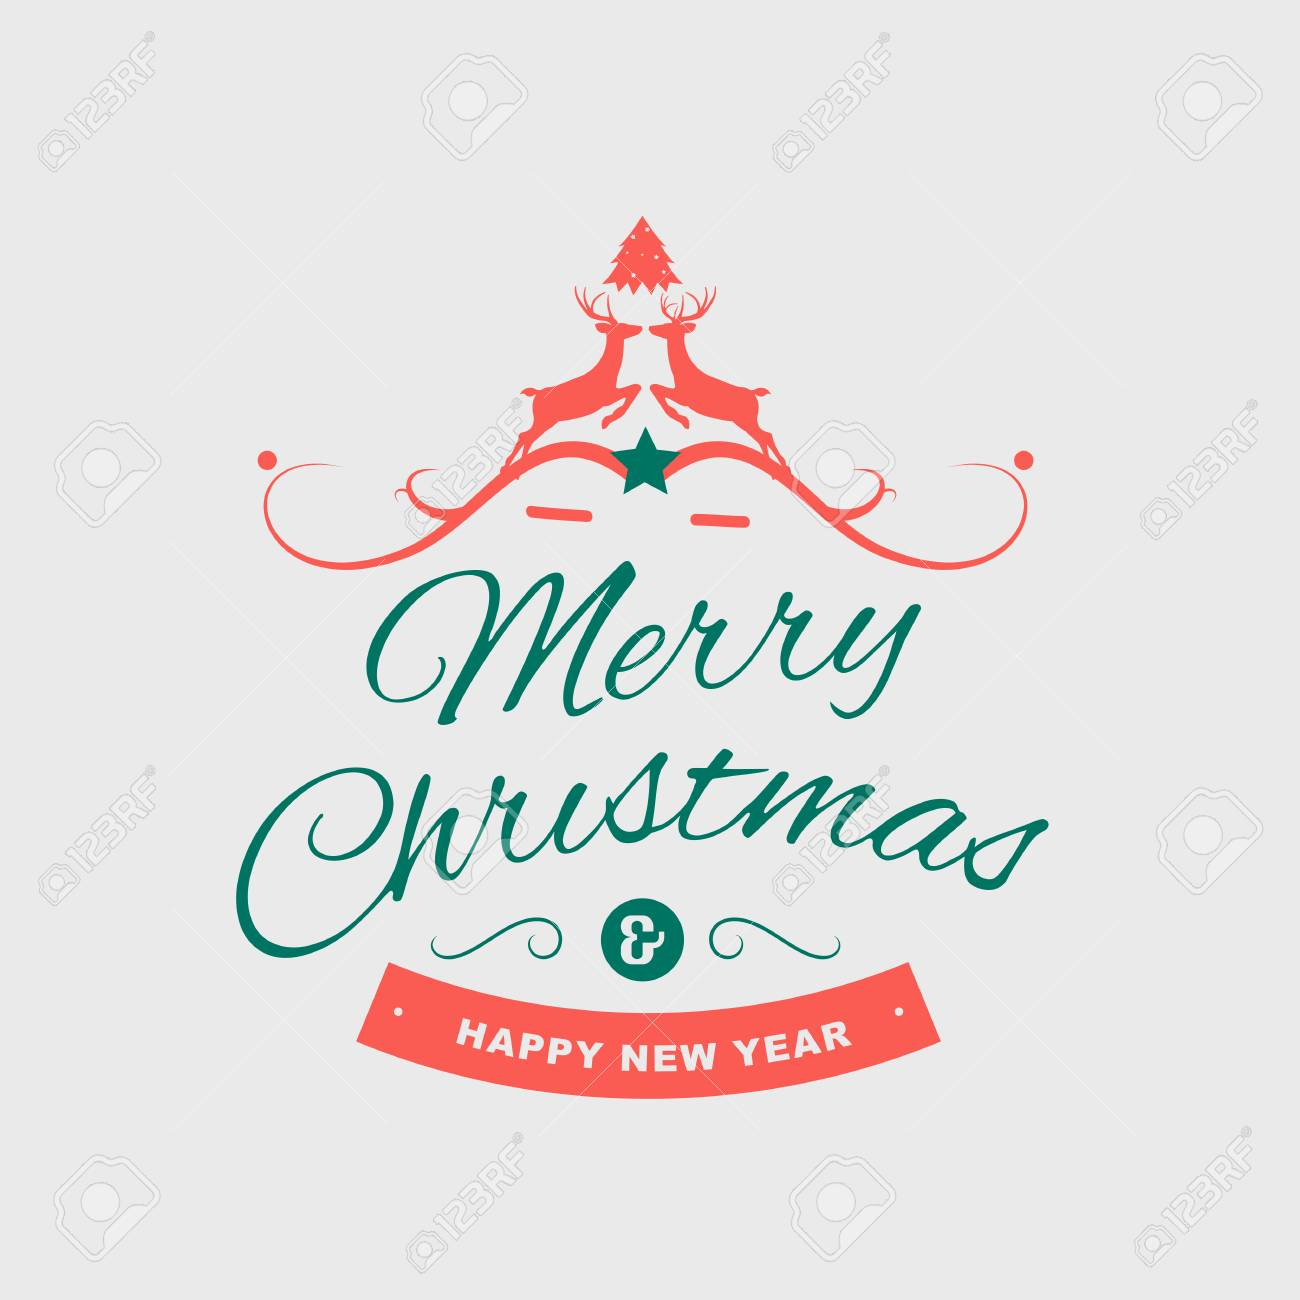 Merry Christmas And Happy New Year Greeting Card Typography Flyer ...